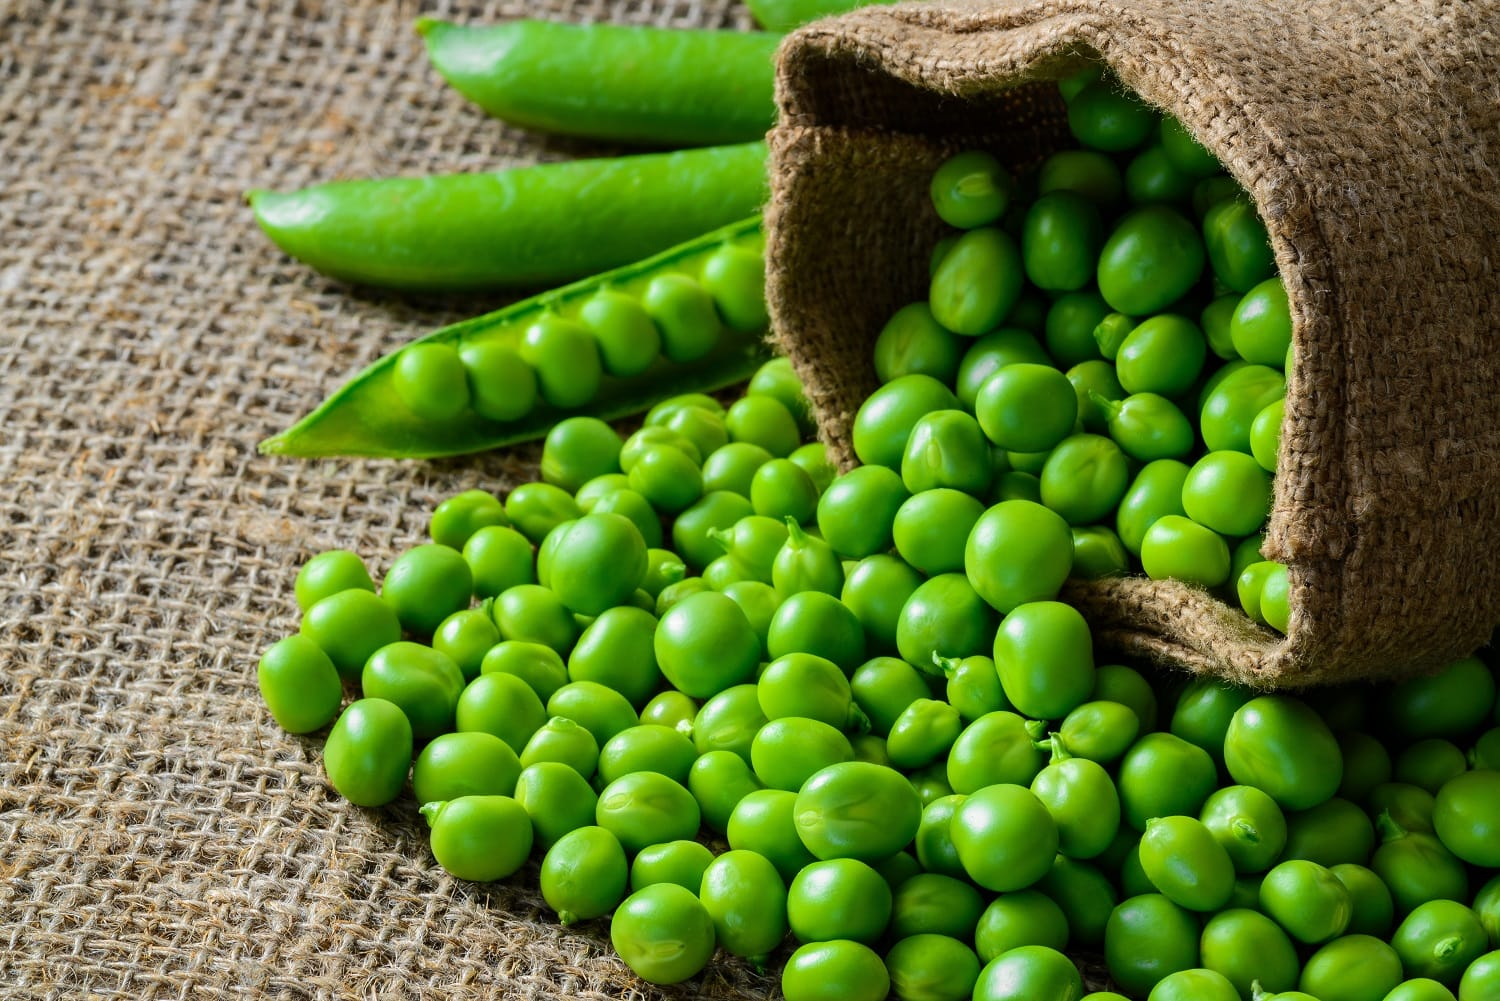 How to use peas? Here are their virtues